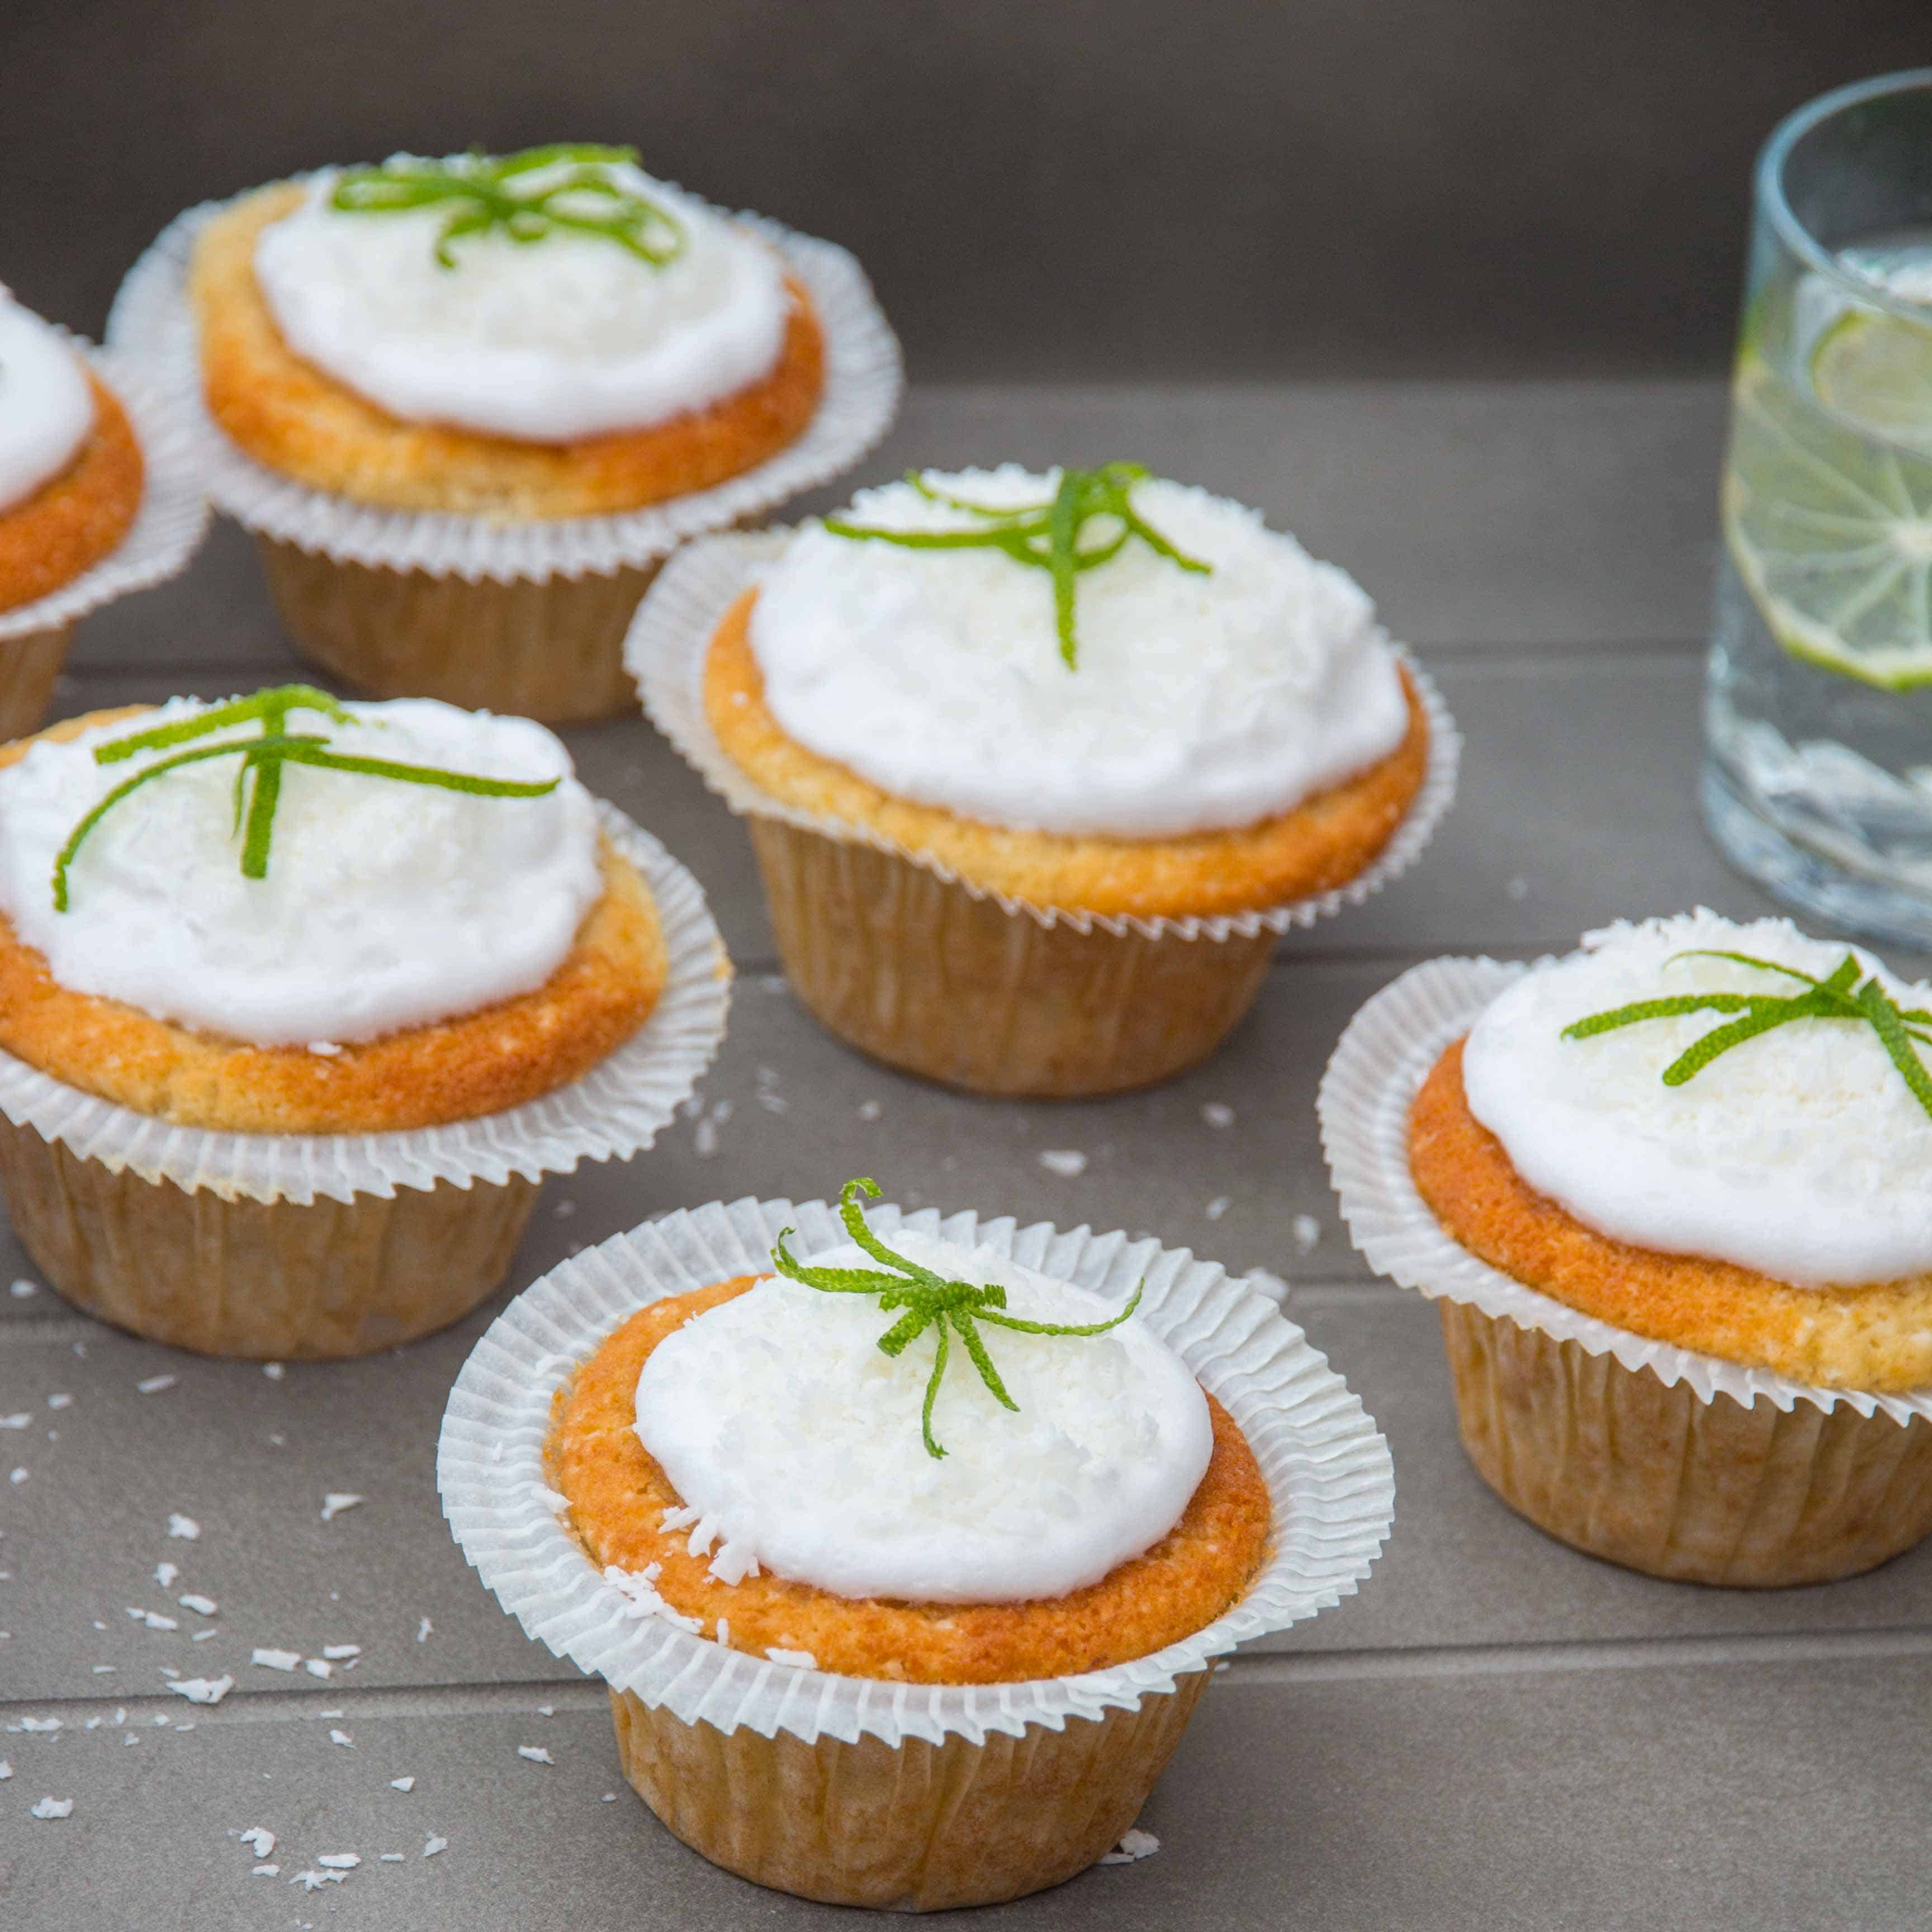 Gluten Free Coconut Lime Cupcakes - Nicky's Kitchen Sanctuary